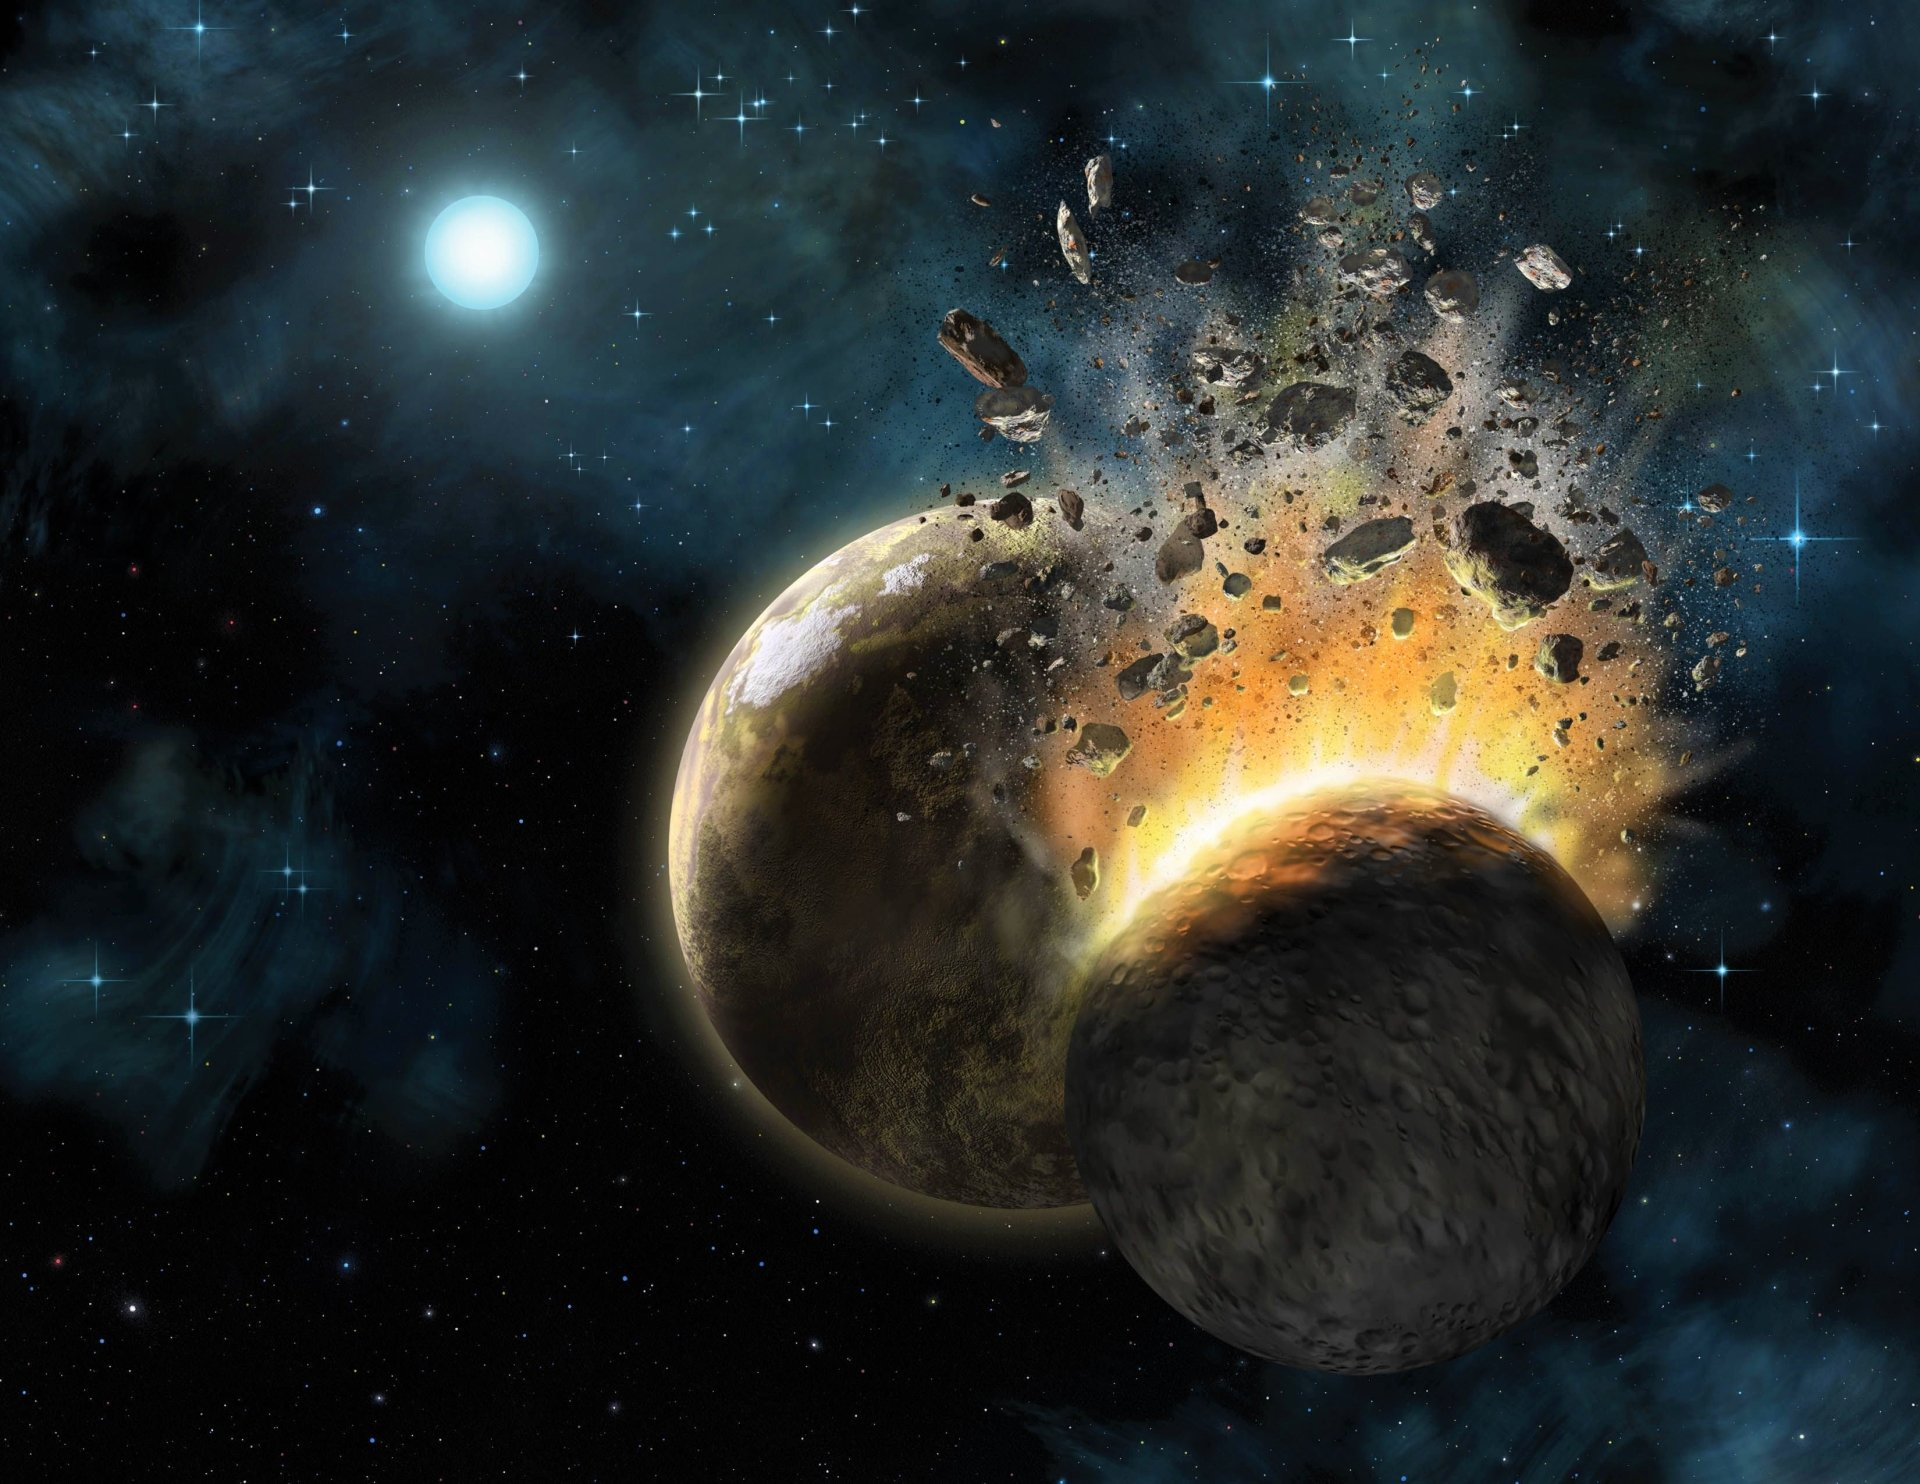 Explosion In Space Full HD Wallpaper And Background Image